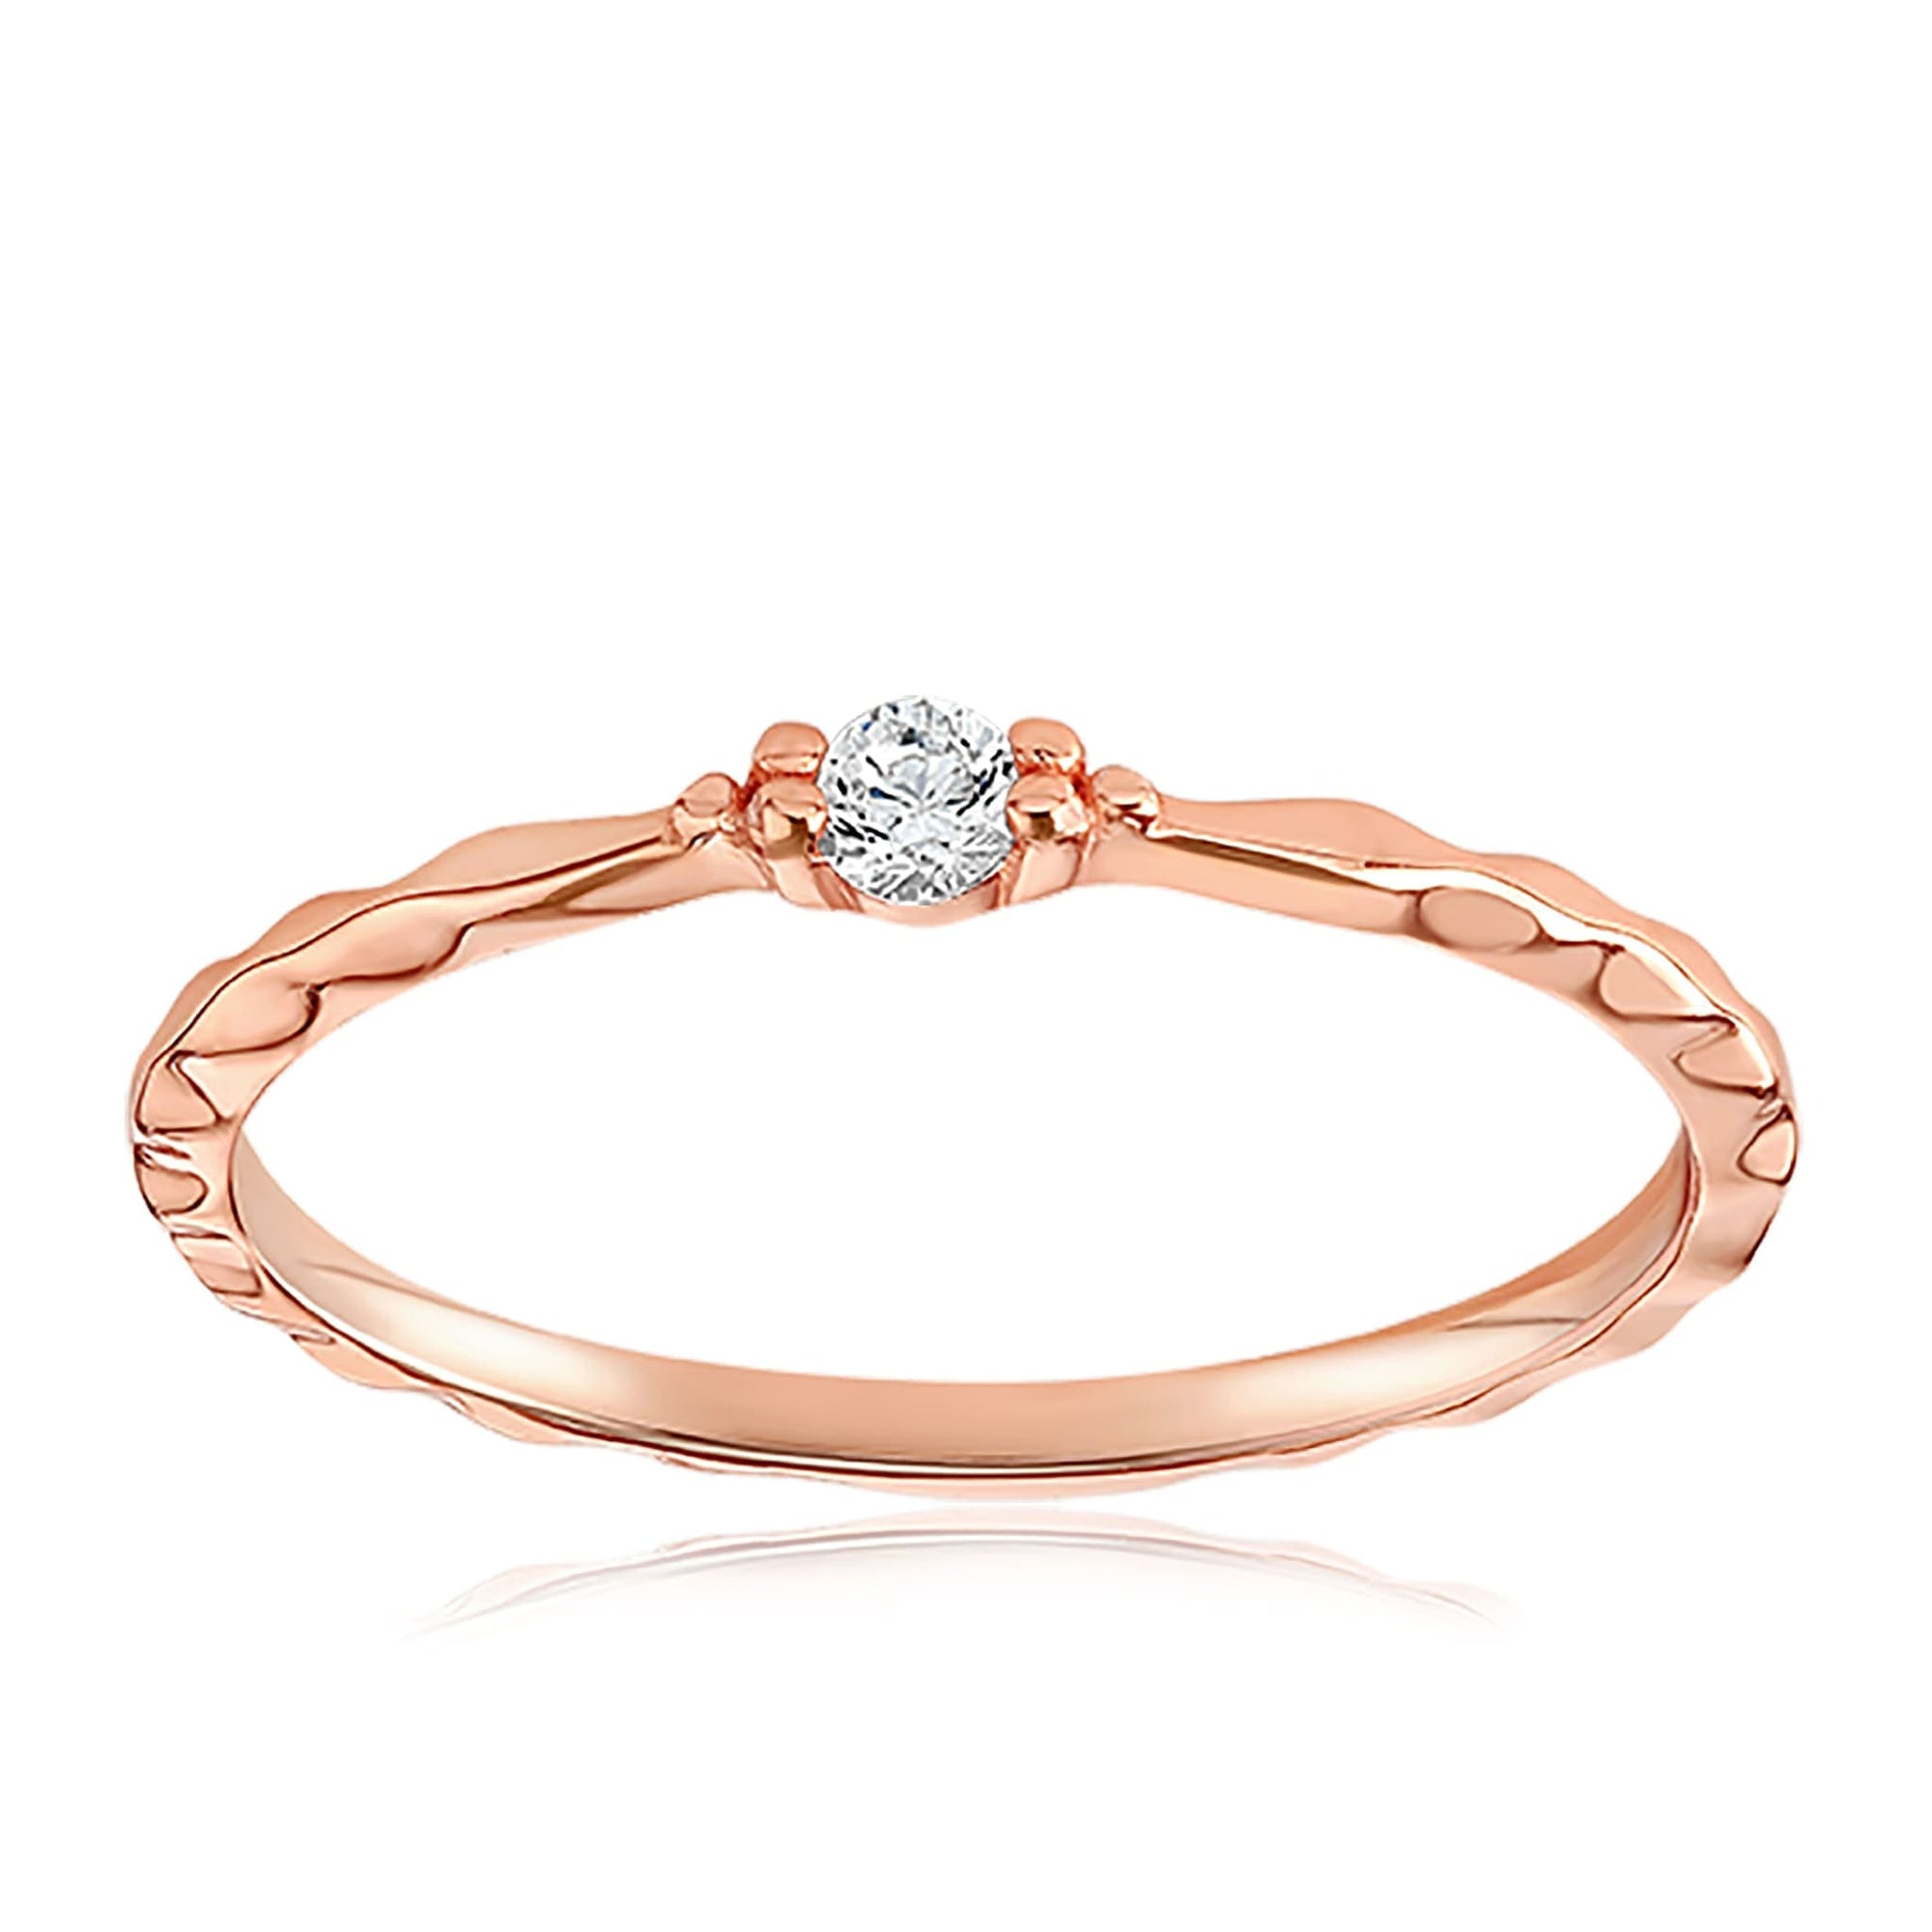 Charisse Vintage Ring - Front View Facing Up - 18K Rose Gold Vermeil